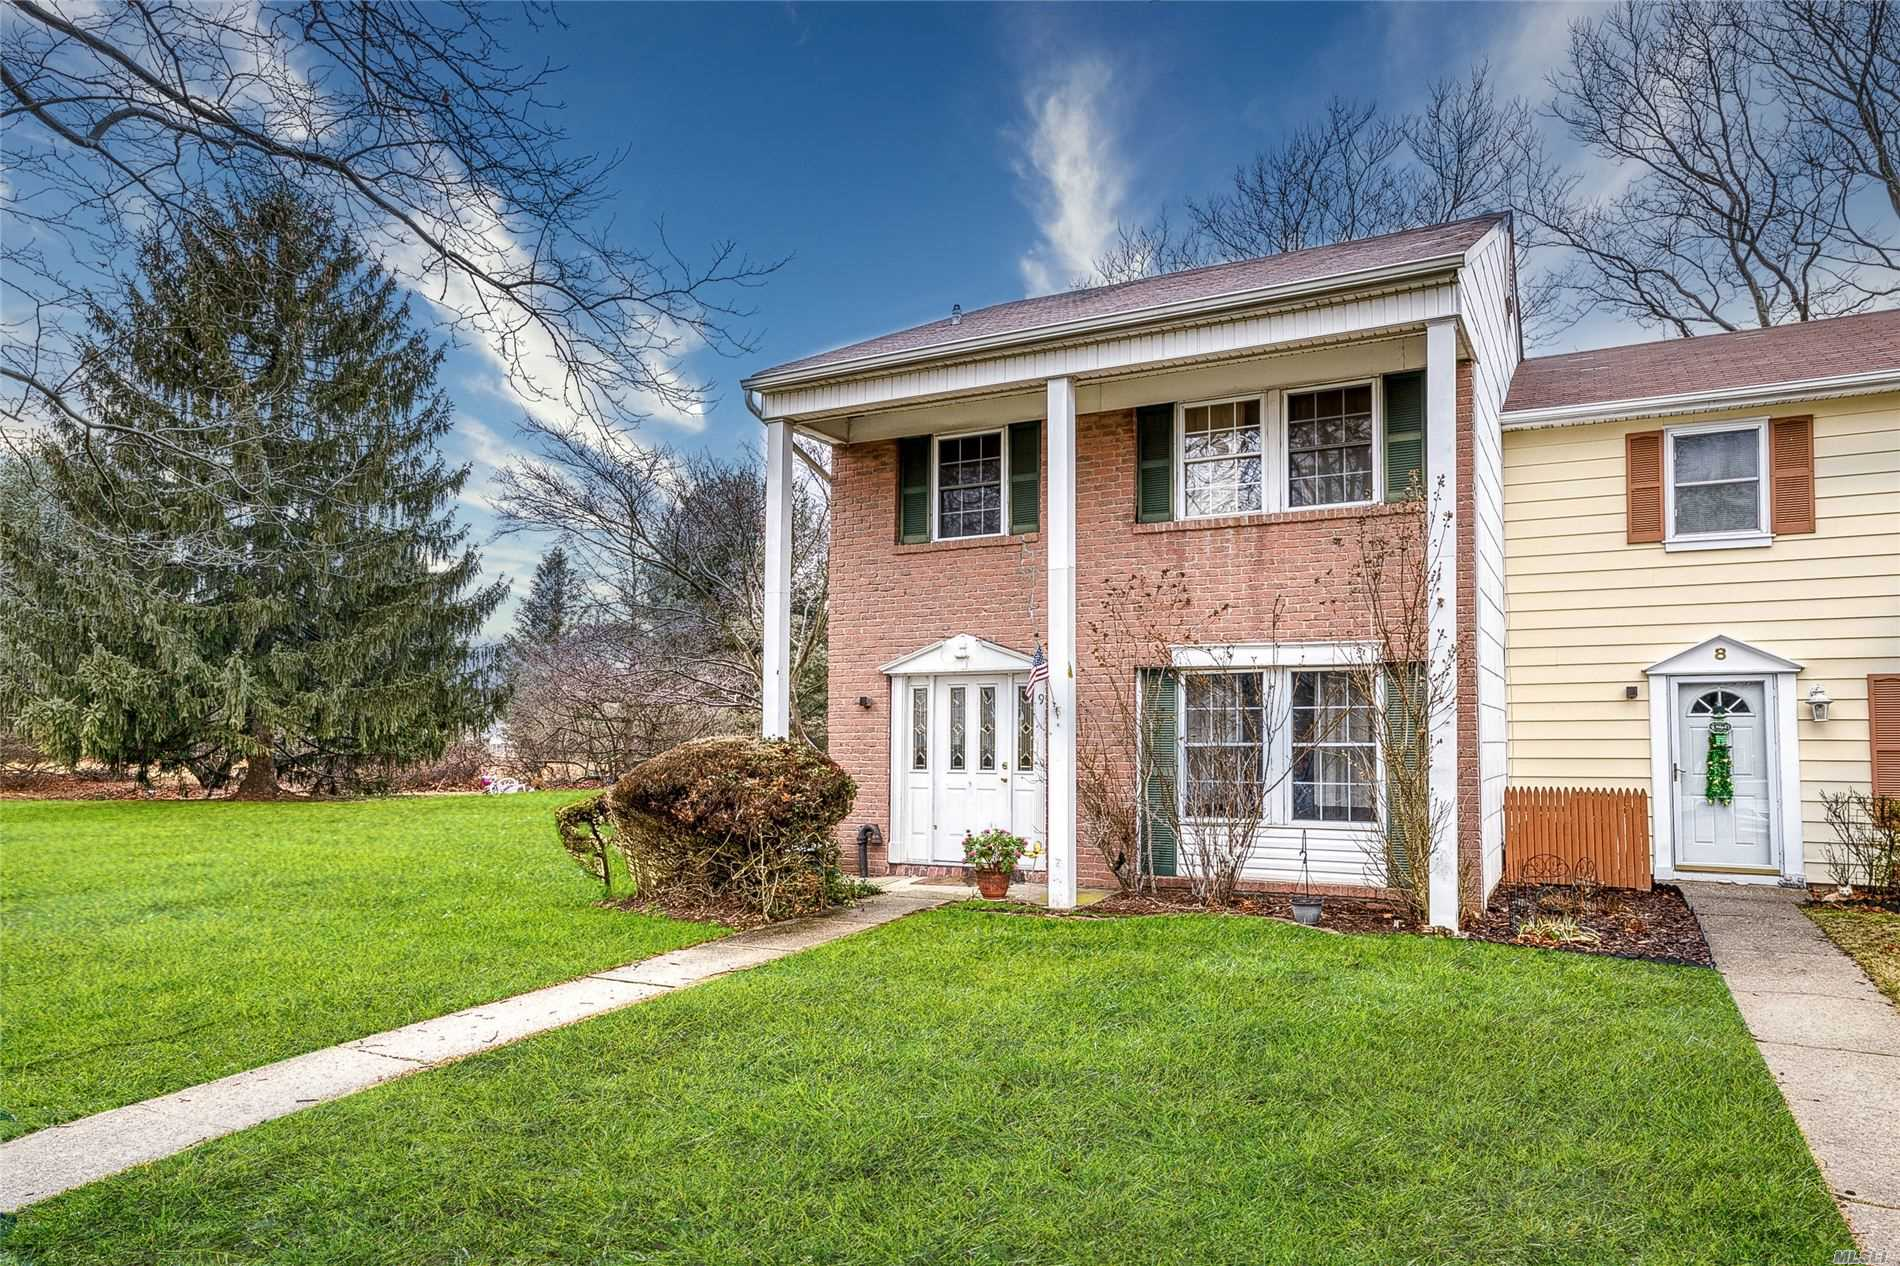 Property for sale at 9 Sharpsburg Court, Coram NY 11727, Coram,  New York 11727